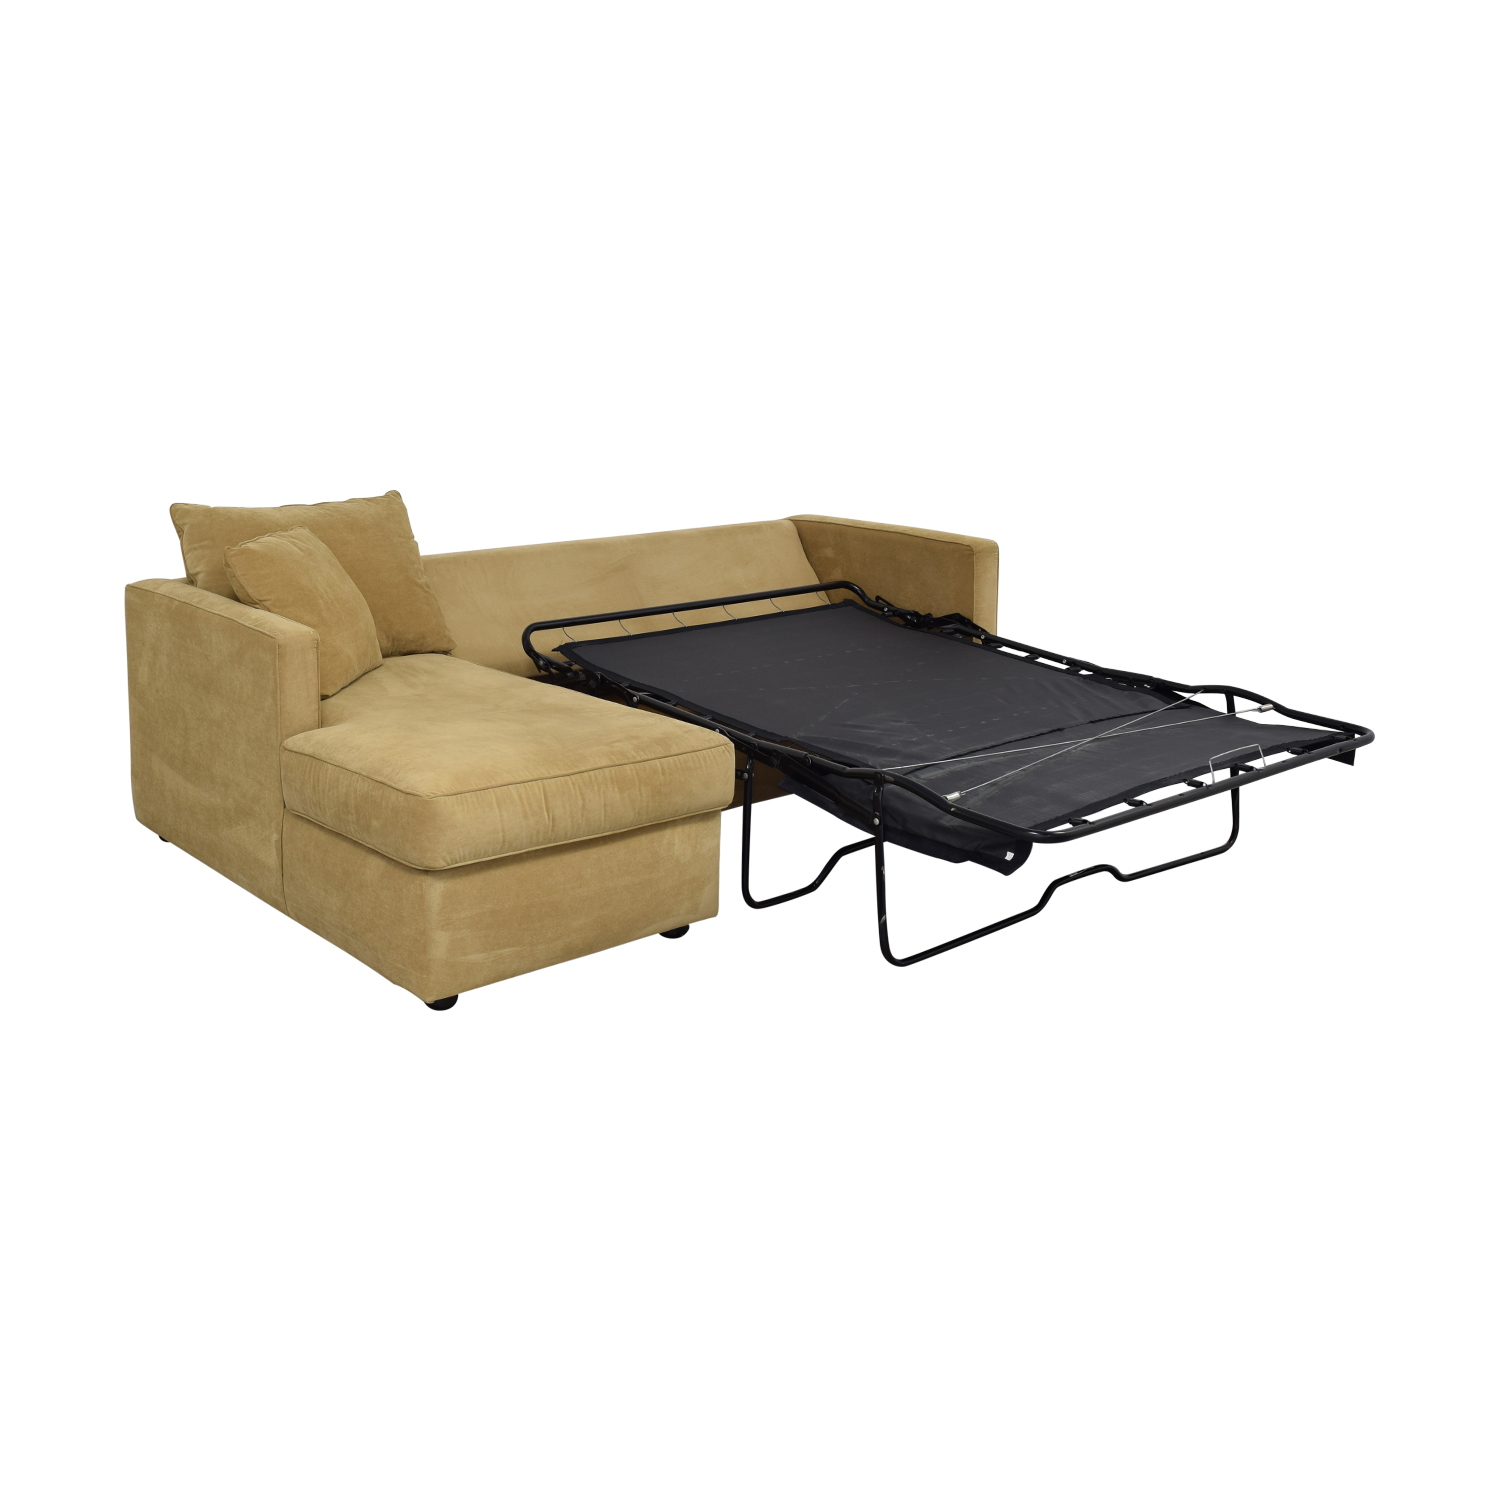 Klaussner Klaussner Chaise Sectional Sleeper Sofa Beige